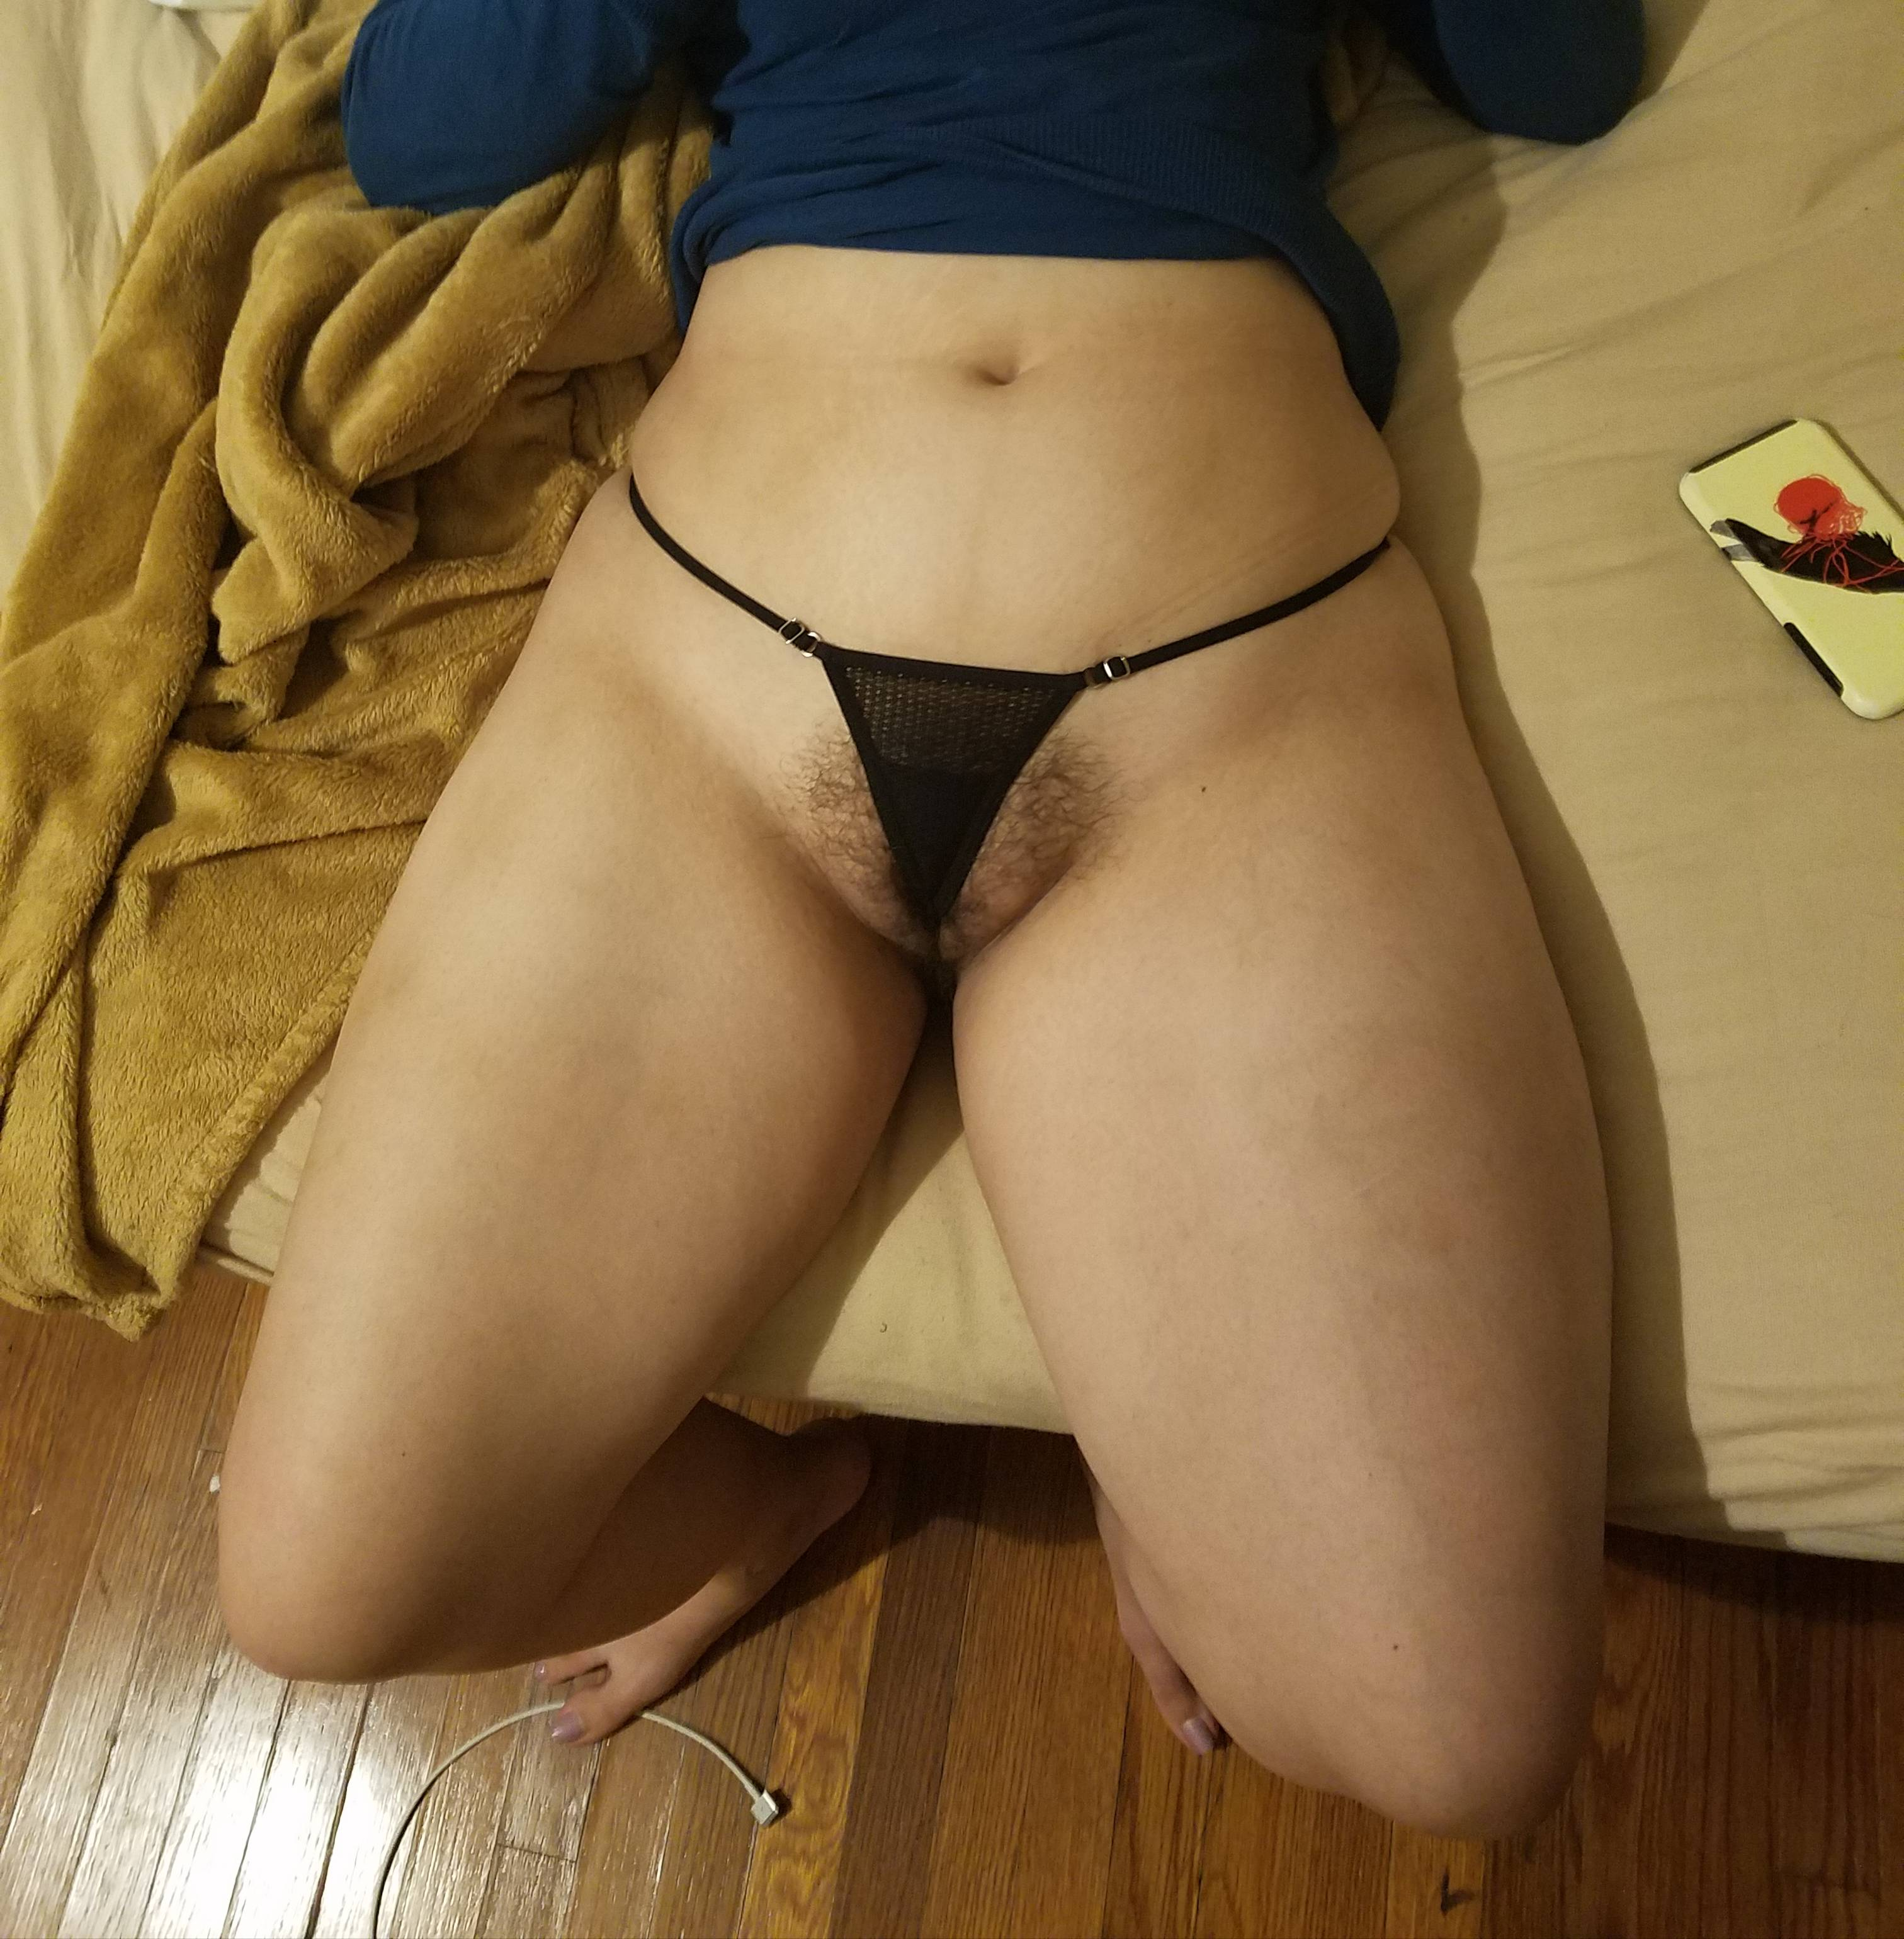 Fetish young girls